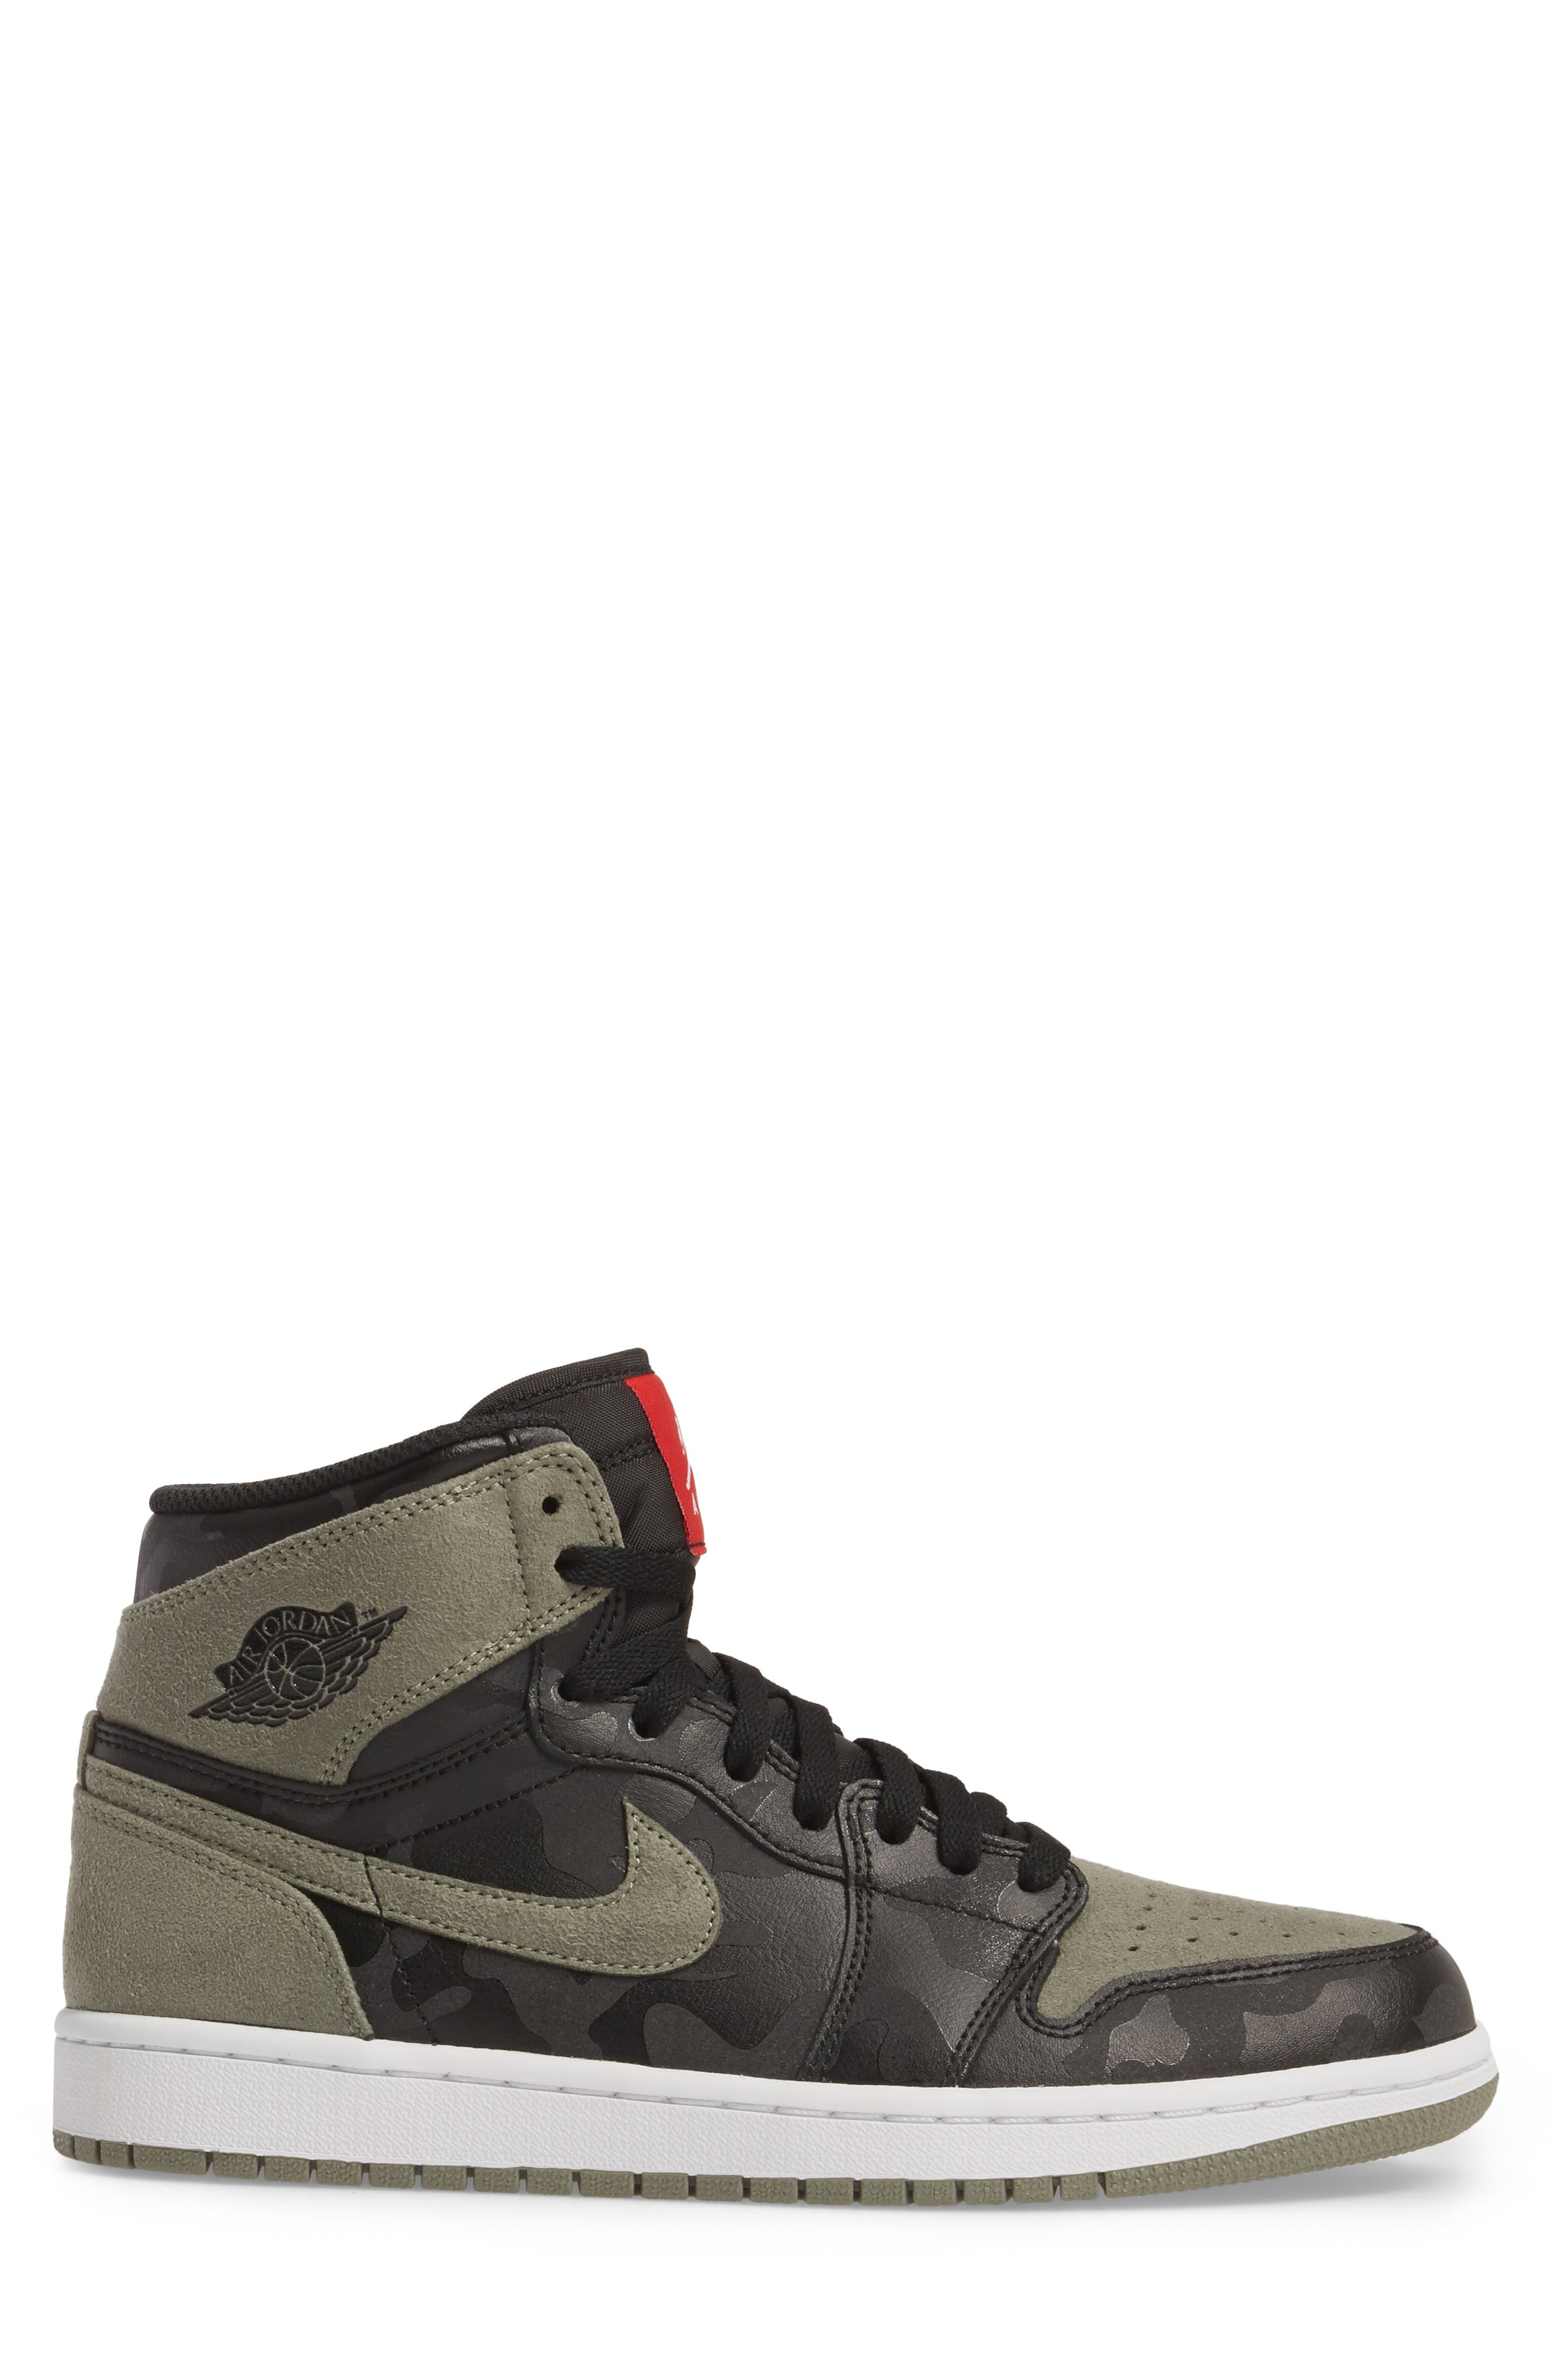 Air Jordan 1 Retro High Top Sneaker,                             Alternate thumbnail 3, color,                             Black/ Black